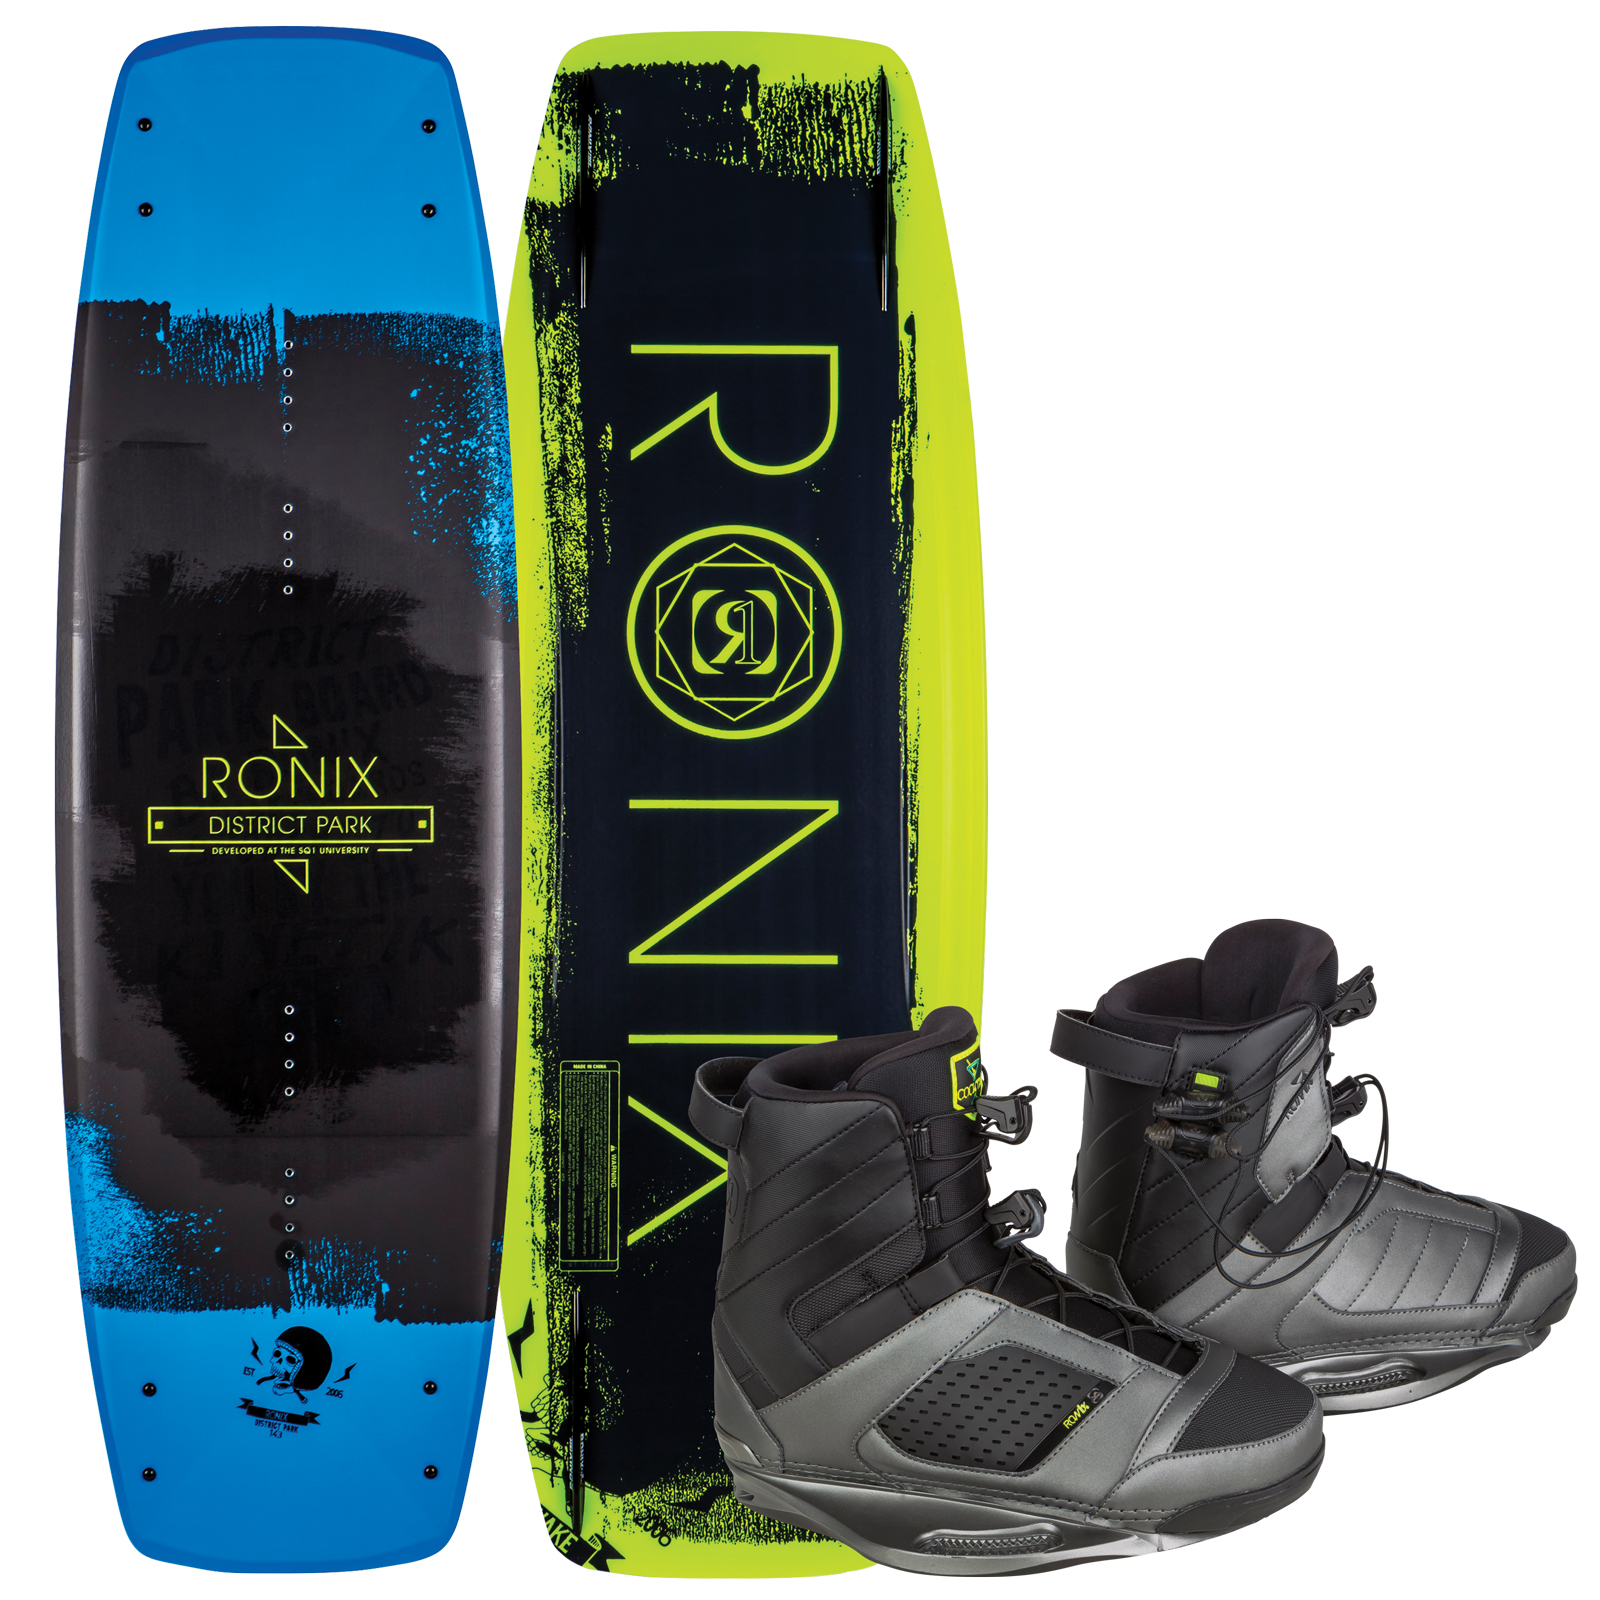 DISTRICT PARK 129 W/ COCKTAIL PACKAGE RONIX 2017